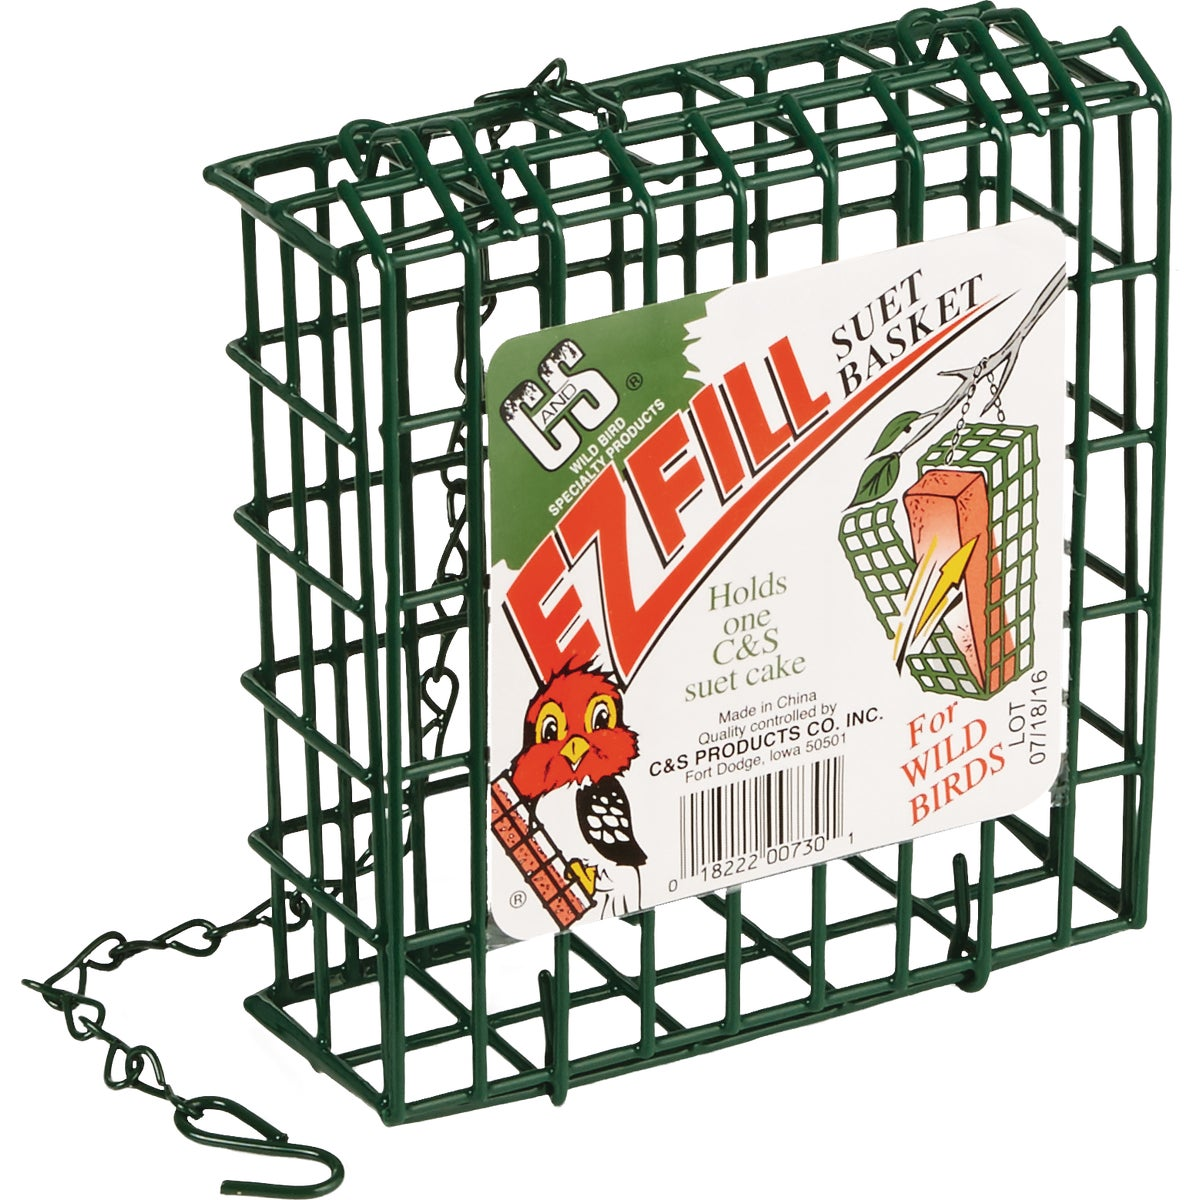 E-Z SUET CAKE HOLDER - 730 by C & S Products Inc